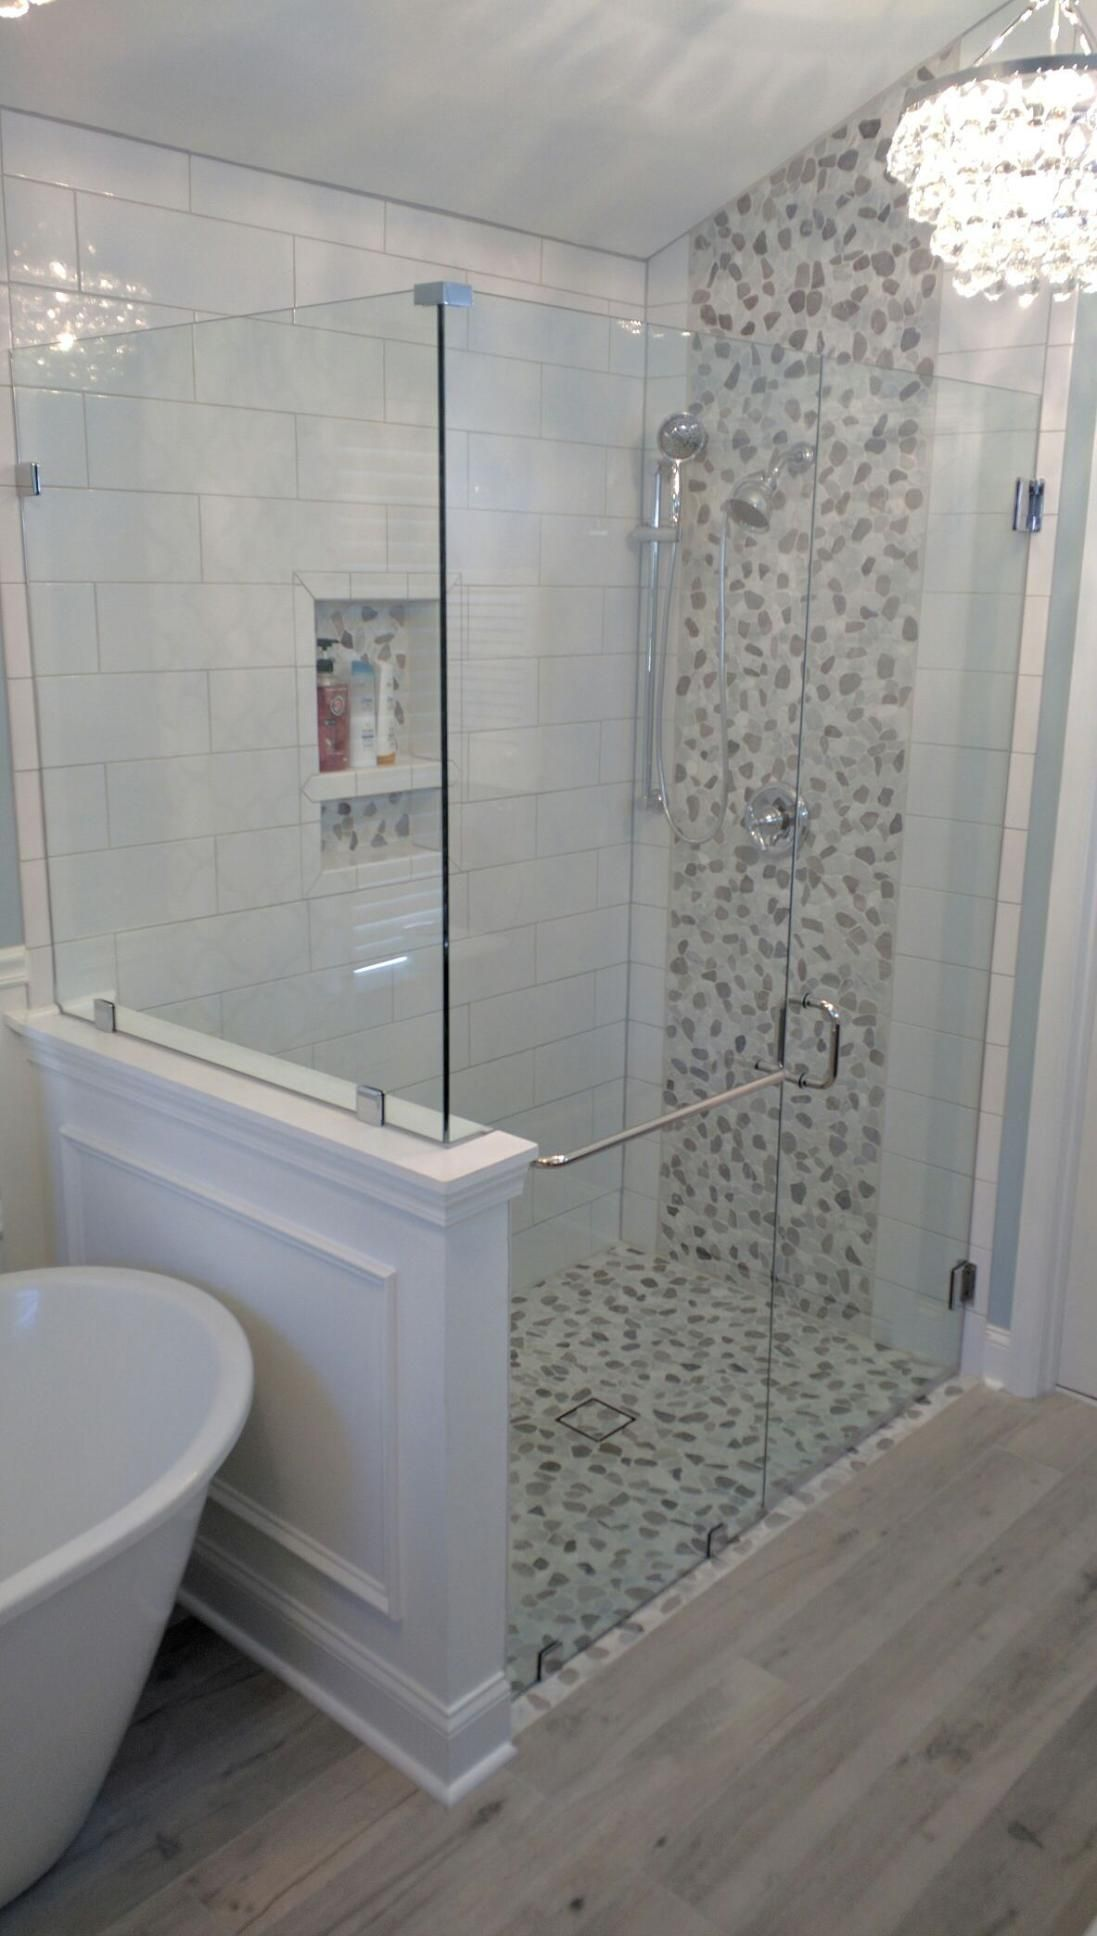 Carrera Pebbles Frameless Shower Glass Large White Subway Tile Curbless Shower Transition Bathroomshowertile Shower Stall Bathroom Tub Glass Bathroom